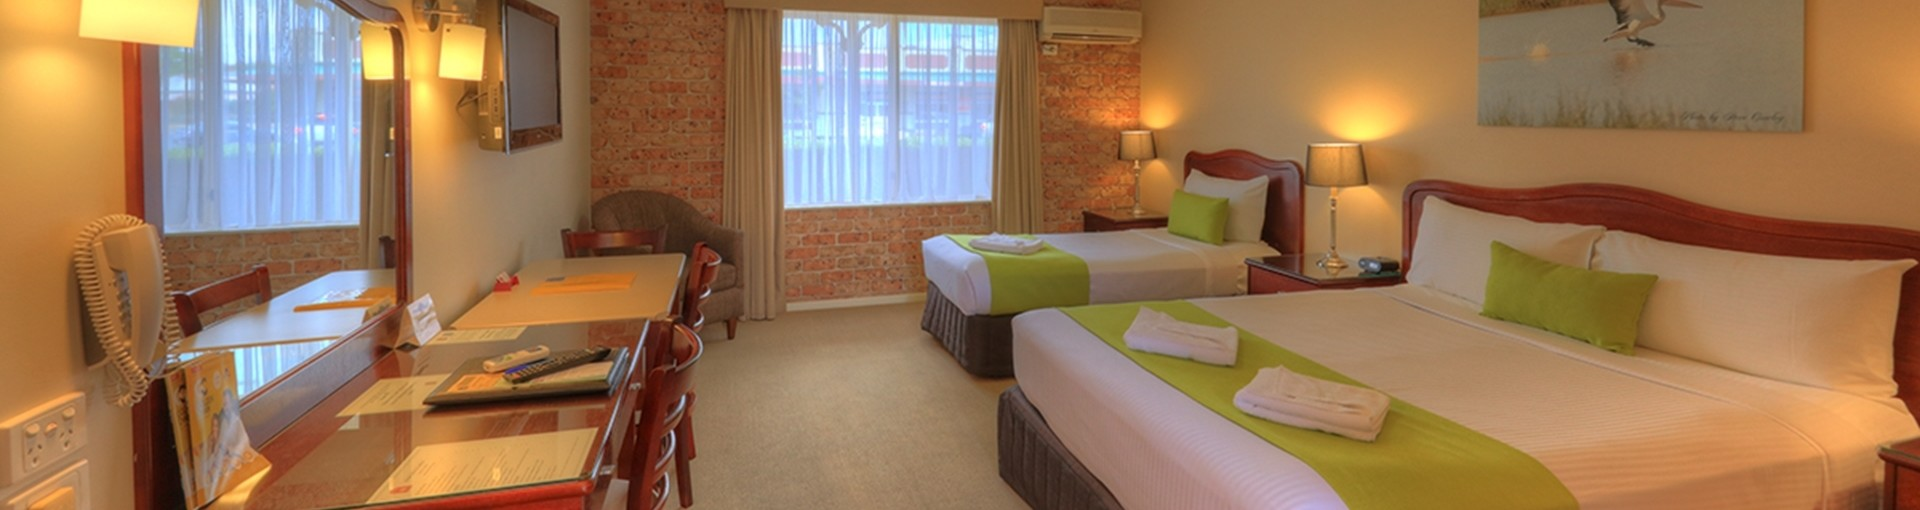 Queen Twin Room - Endeavour Court Motor Inn Dubbo NSW